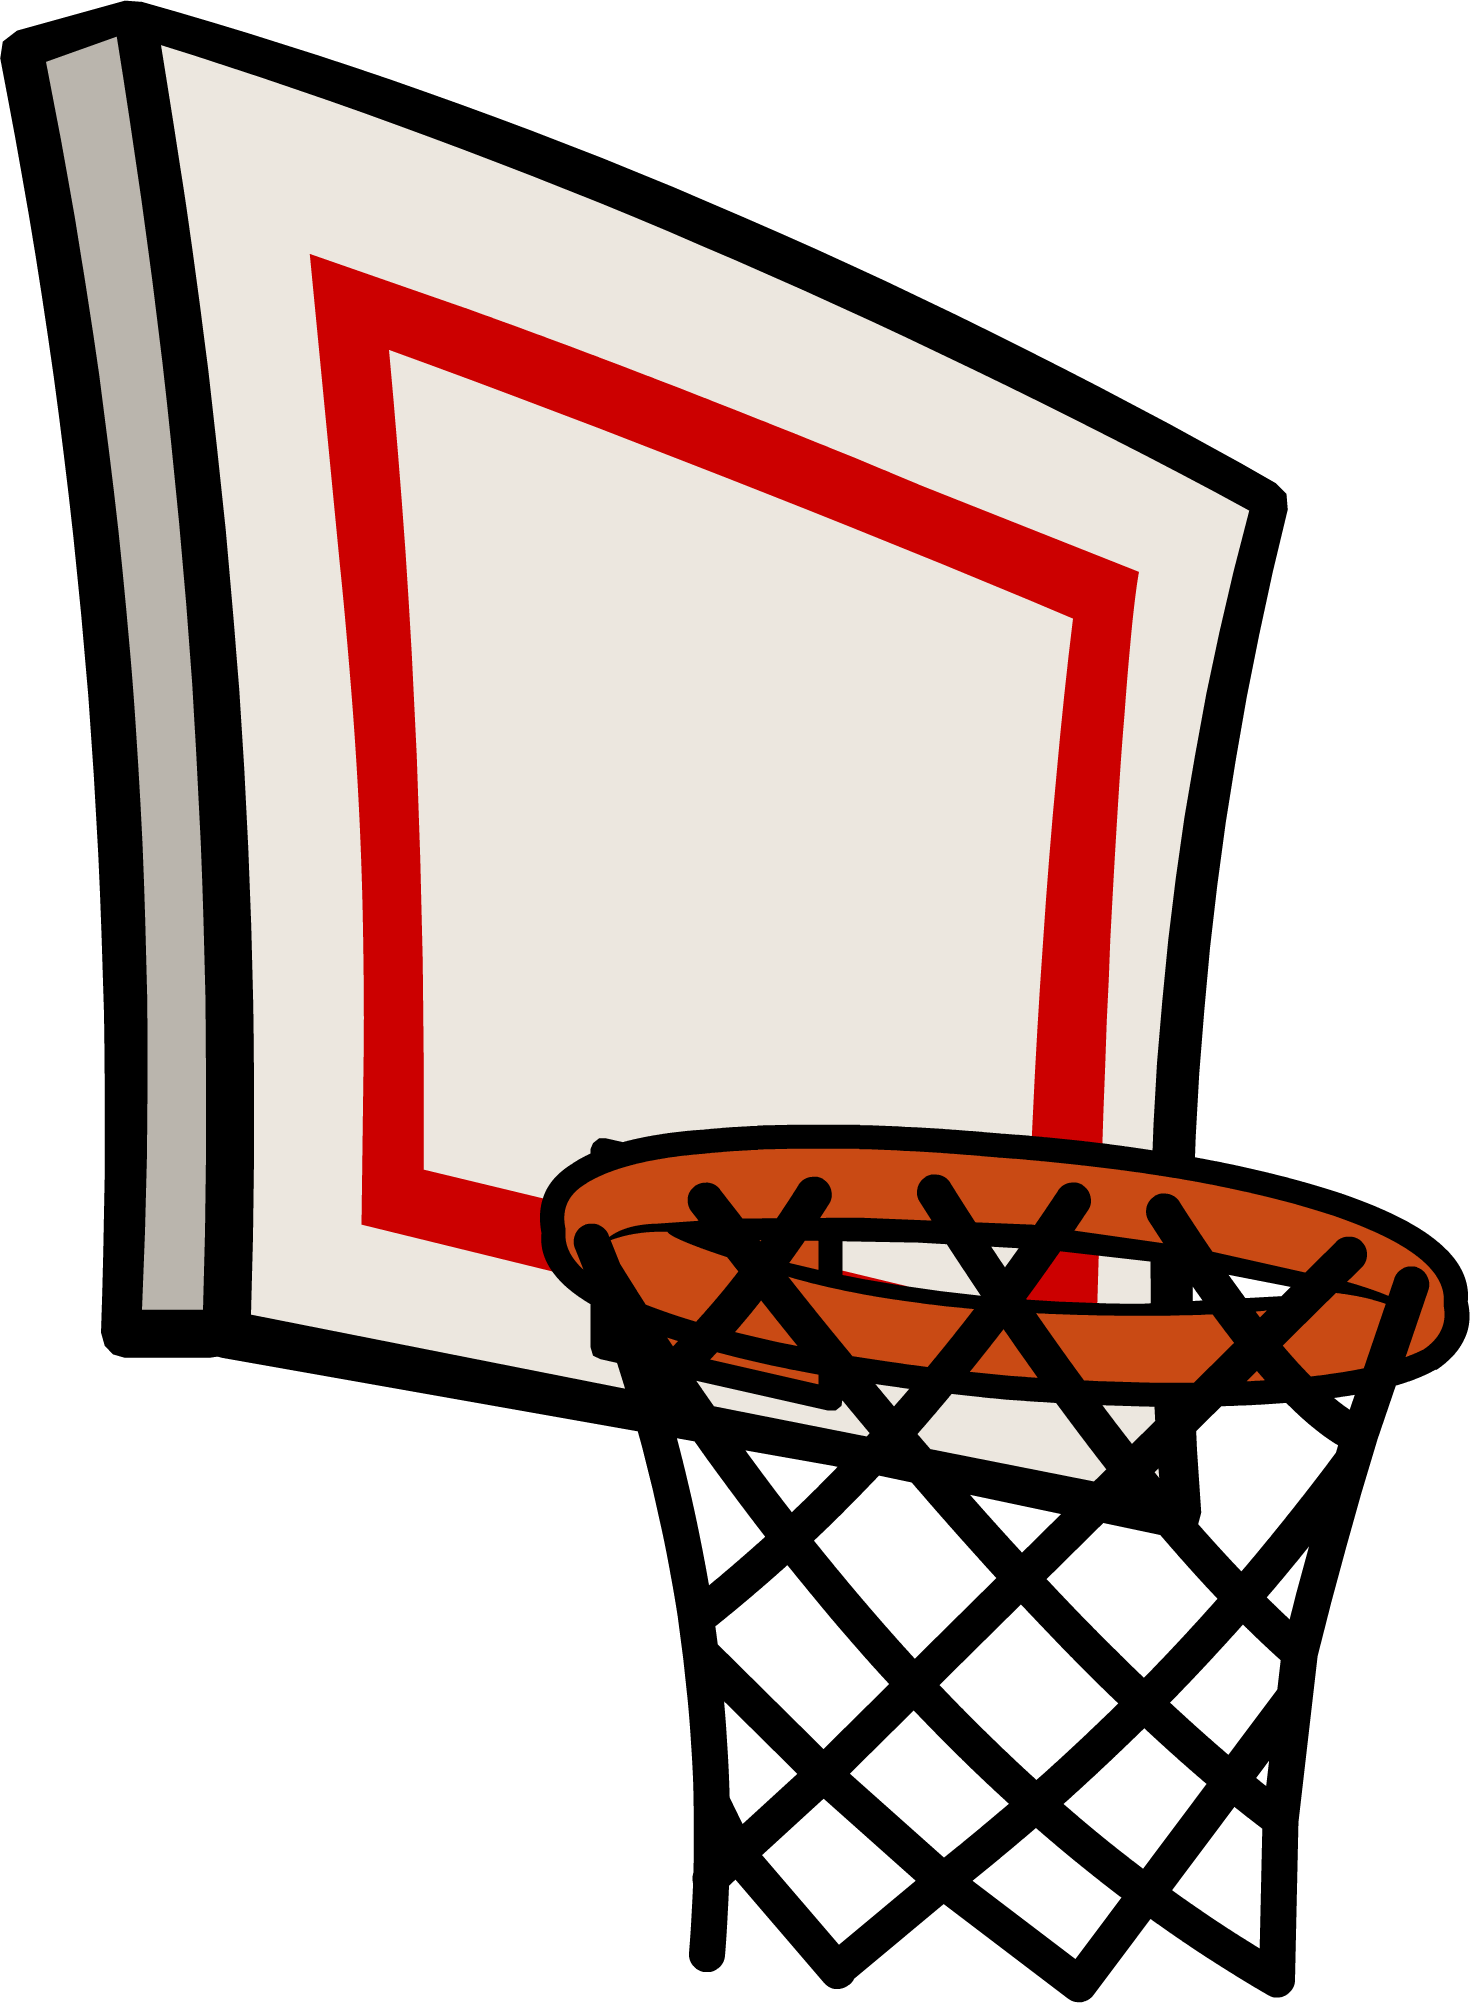 Basketball fire hoop clipart png black and white Image - Basketball Net sprite 001.png | Club Penguin Wiki | FANDOM ... png black and white